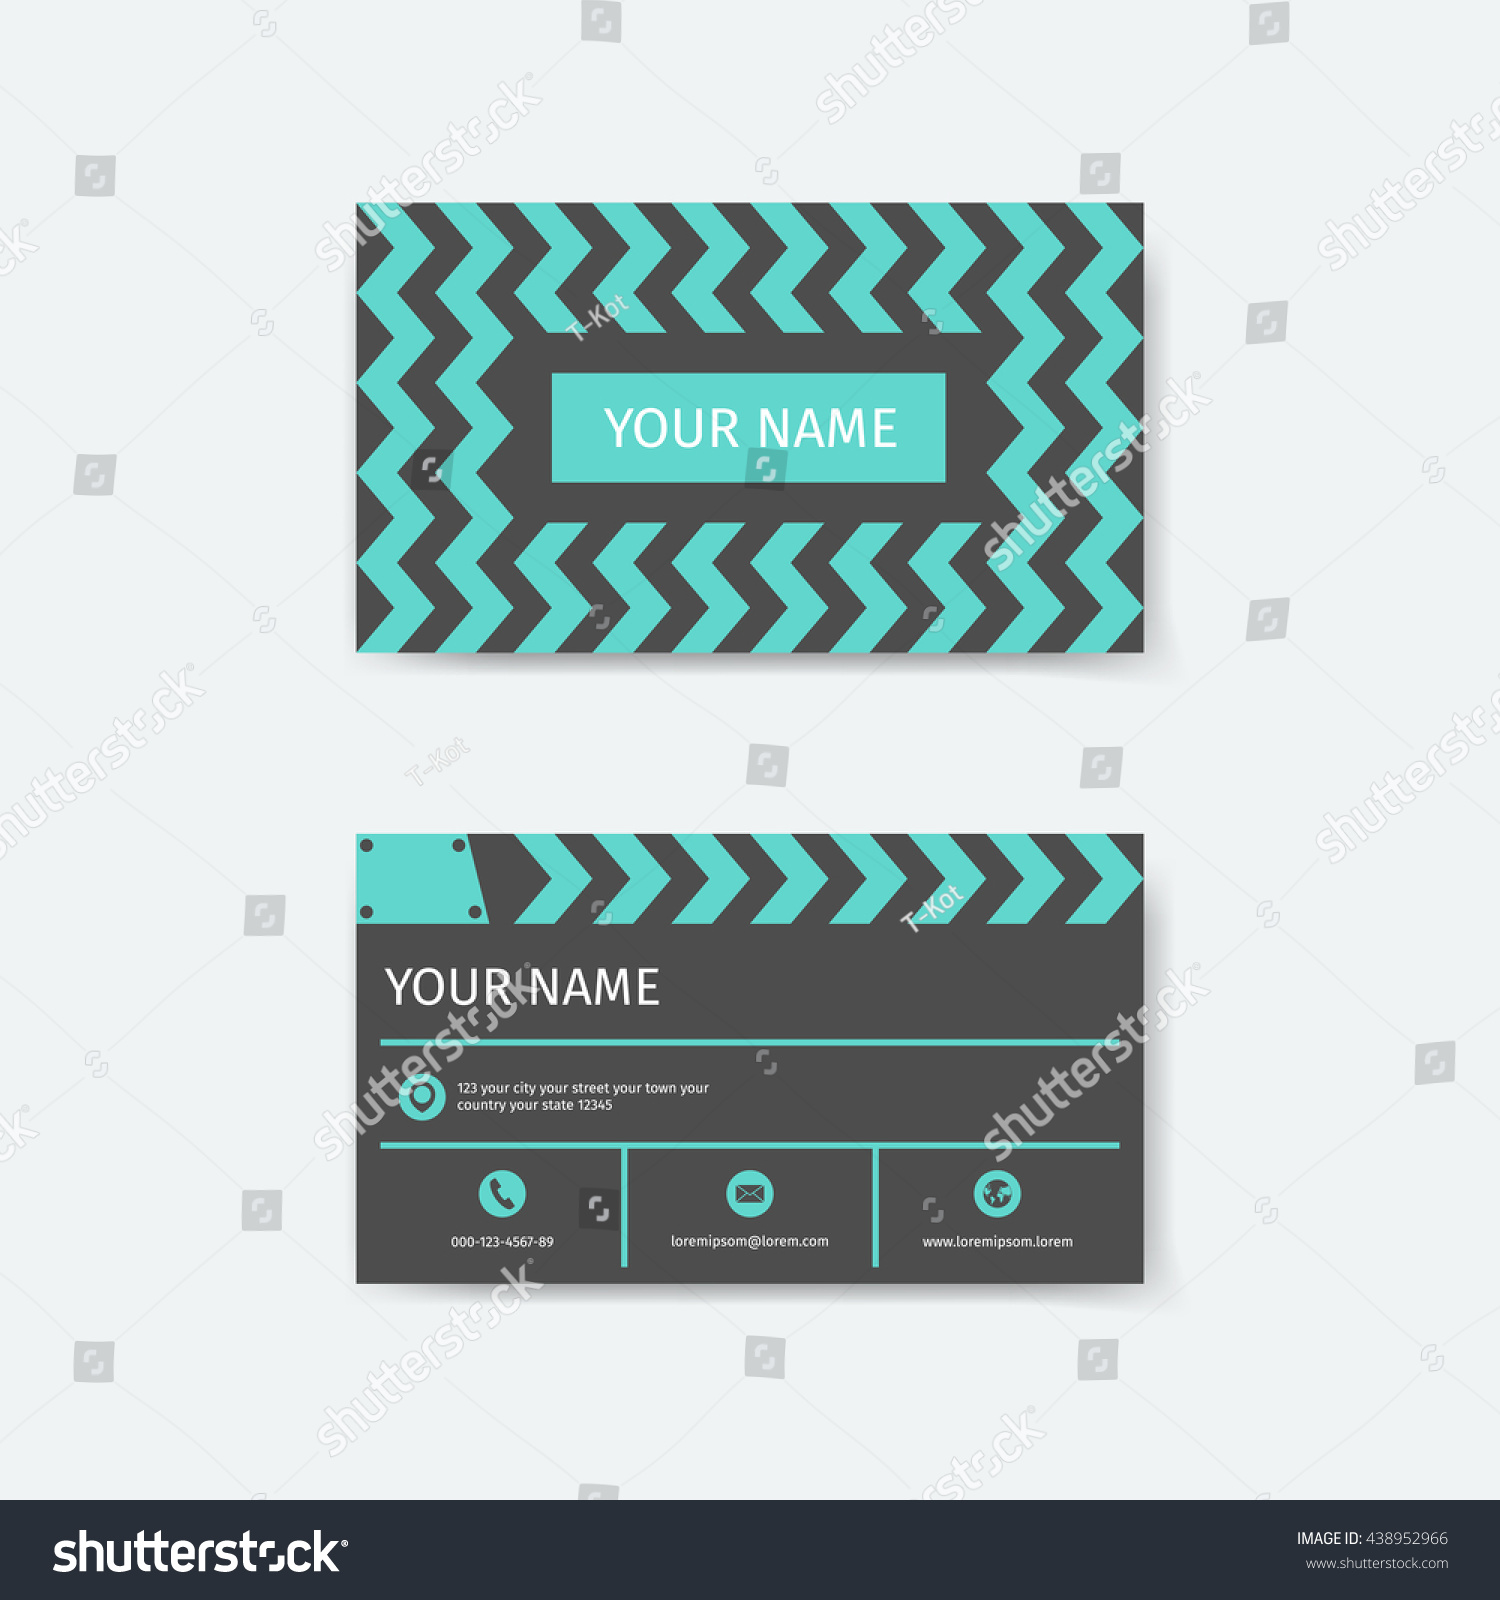 Business Card Design Template Clapboard Film Stock Vector ...